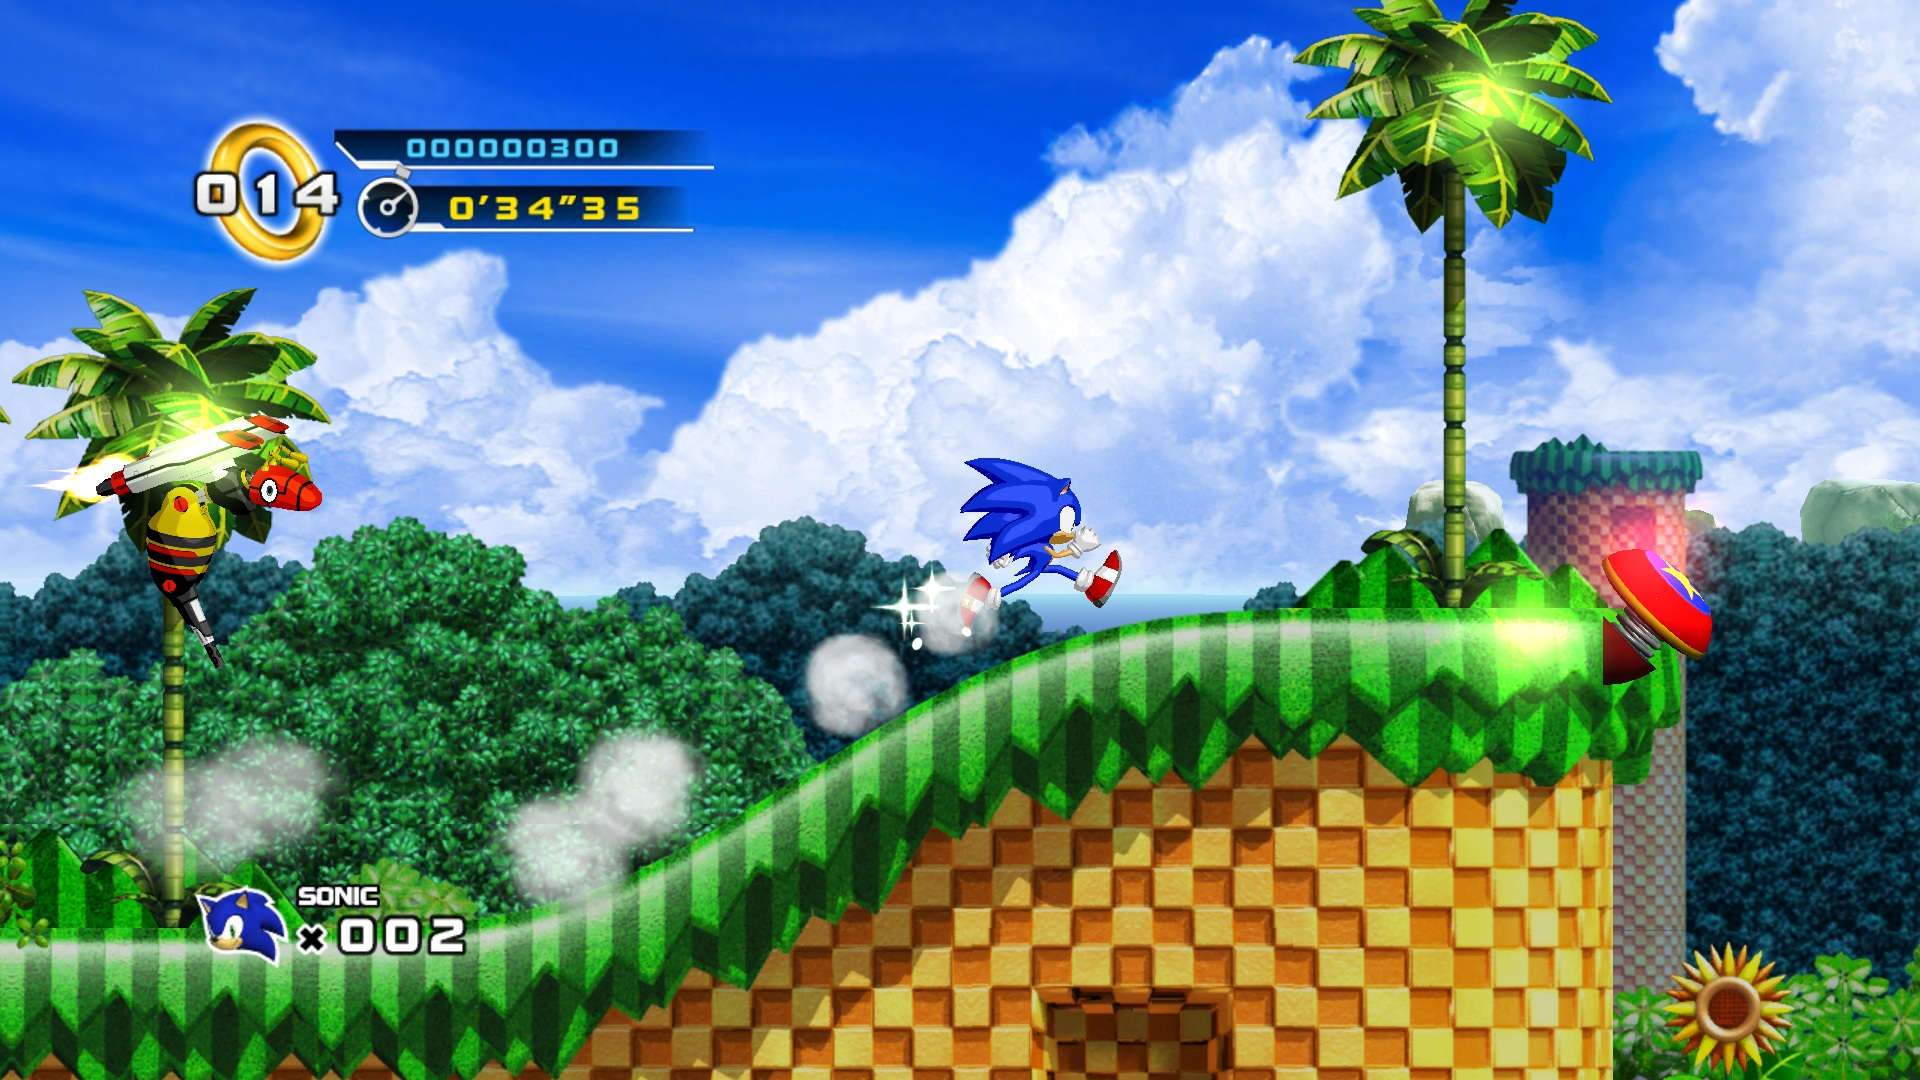 Sonic The Hedgehog 4 Episode I Hd Wallpaper Background Image 1920x1080 Id 509988 Wallpaper Abyss